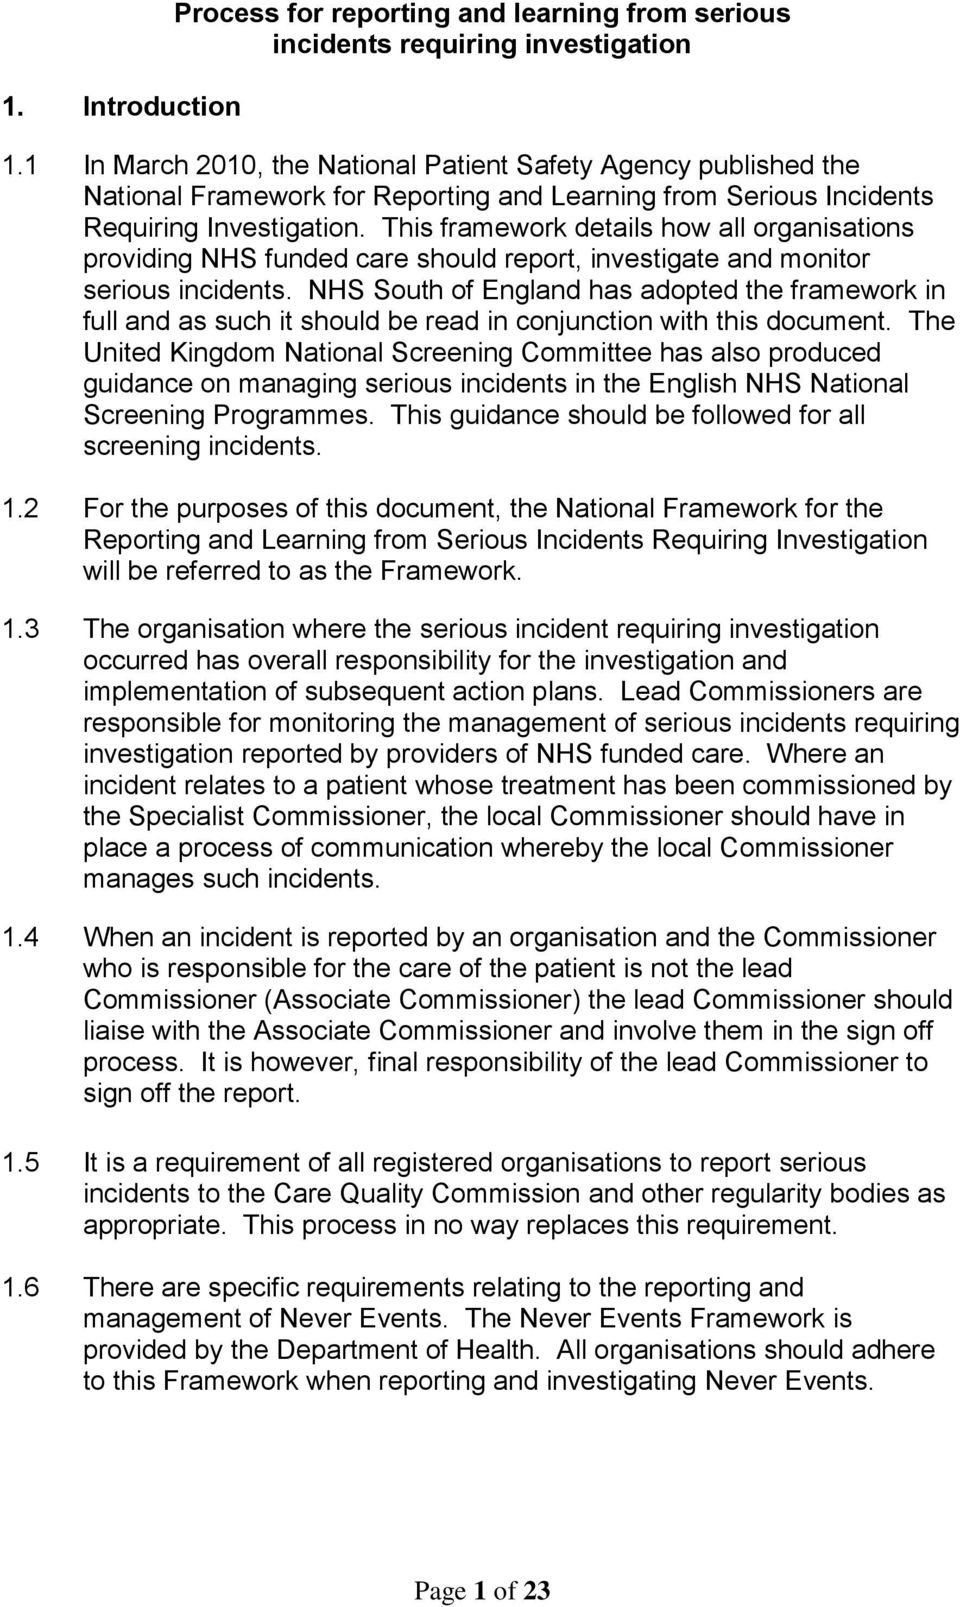 This framework details how all organisations providing NHS funded care should report, investigate and monitor serious incidents.